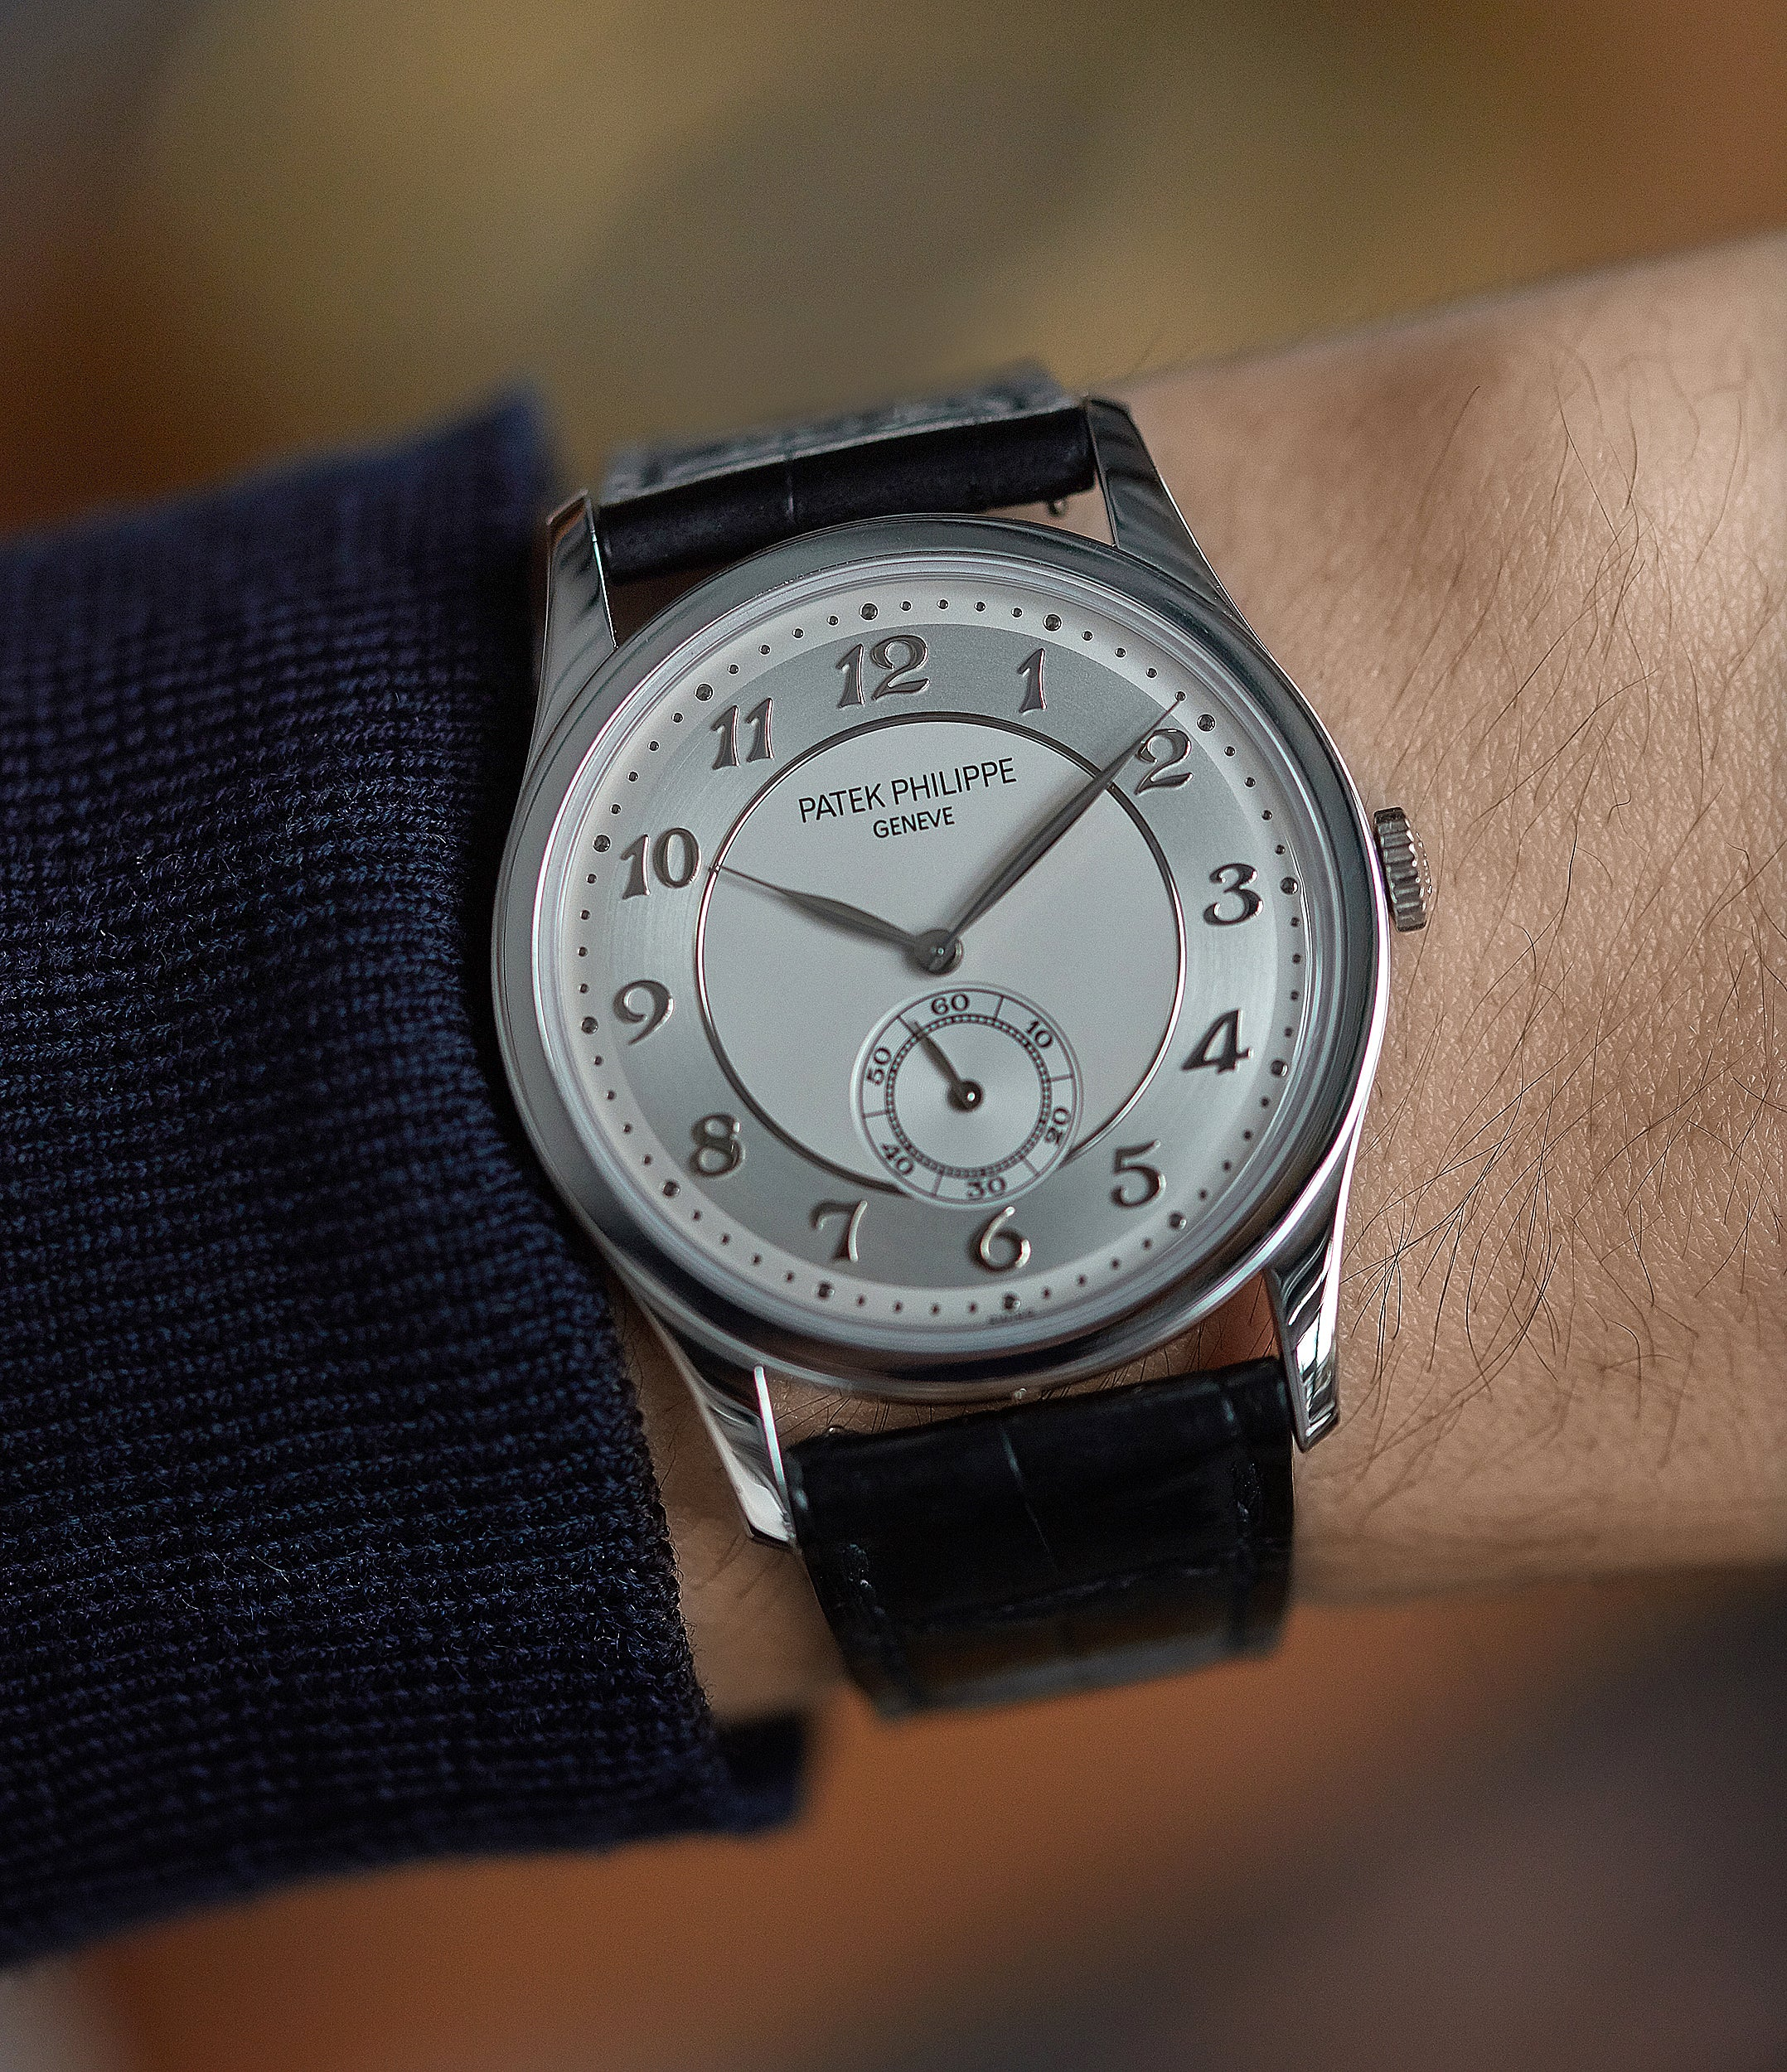 hands-on Patek Philippe 5196P Calatrava time-only platinum men's dress watch for sale online at A Collected Man London UK specialist of rare watches